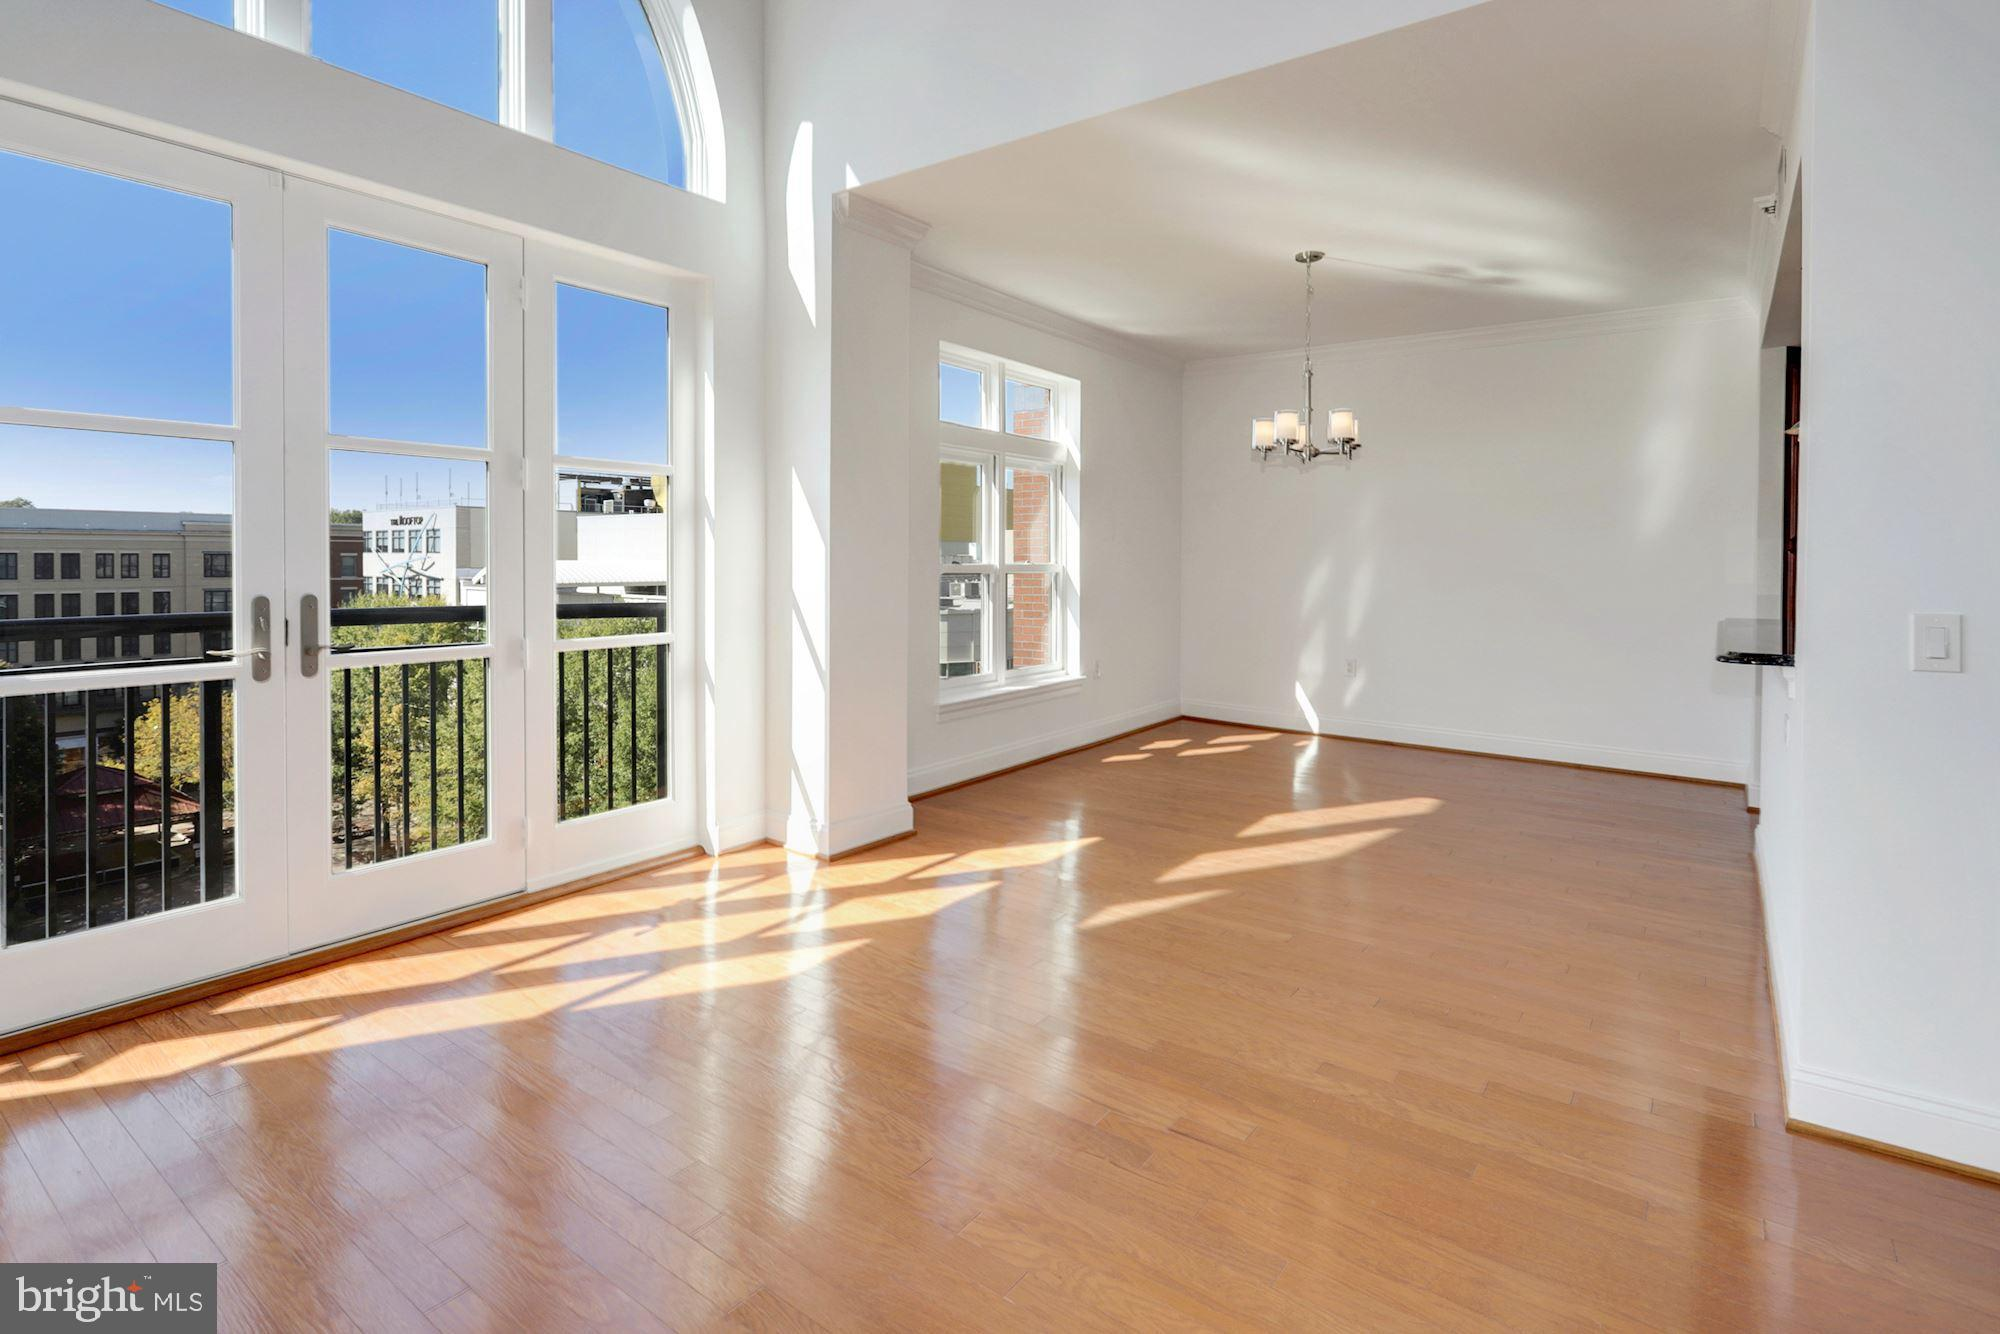 MODERN 2-level penthouse condominium in the Palladin with a bright, open floor plan, high ceilings,